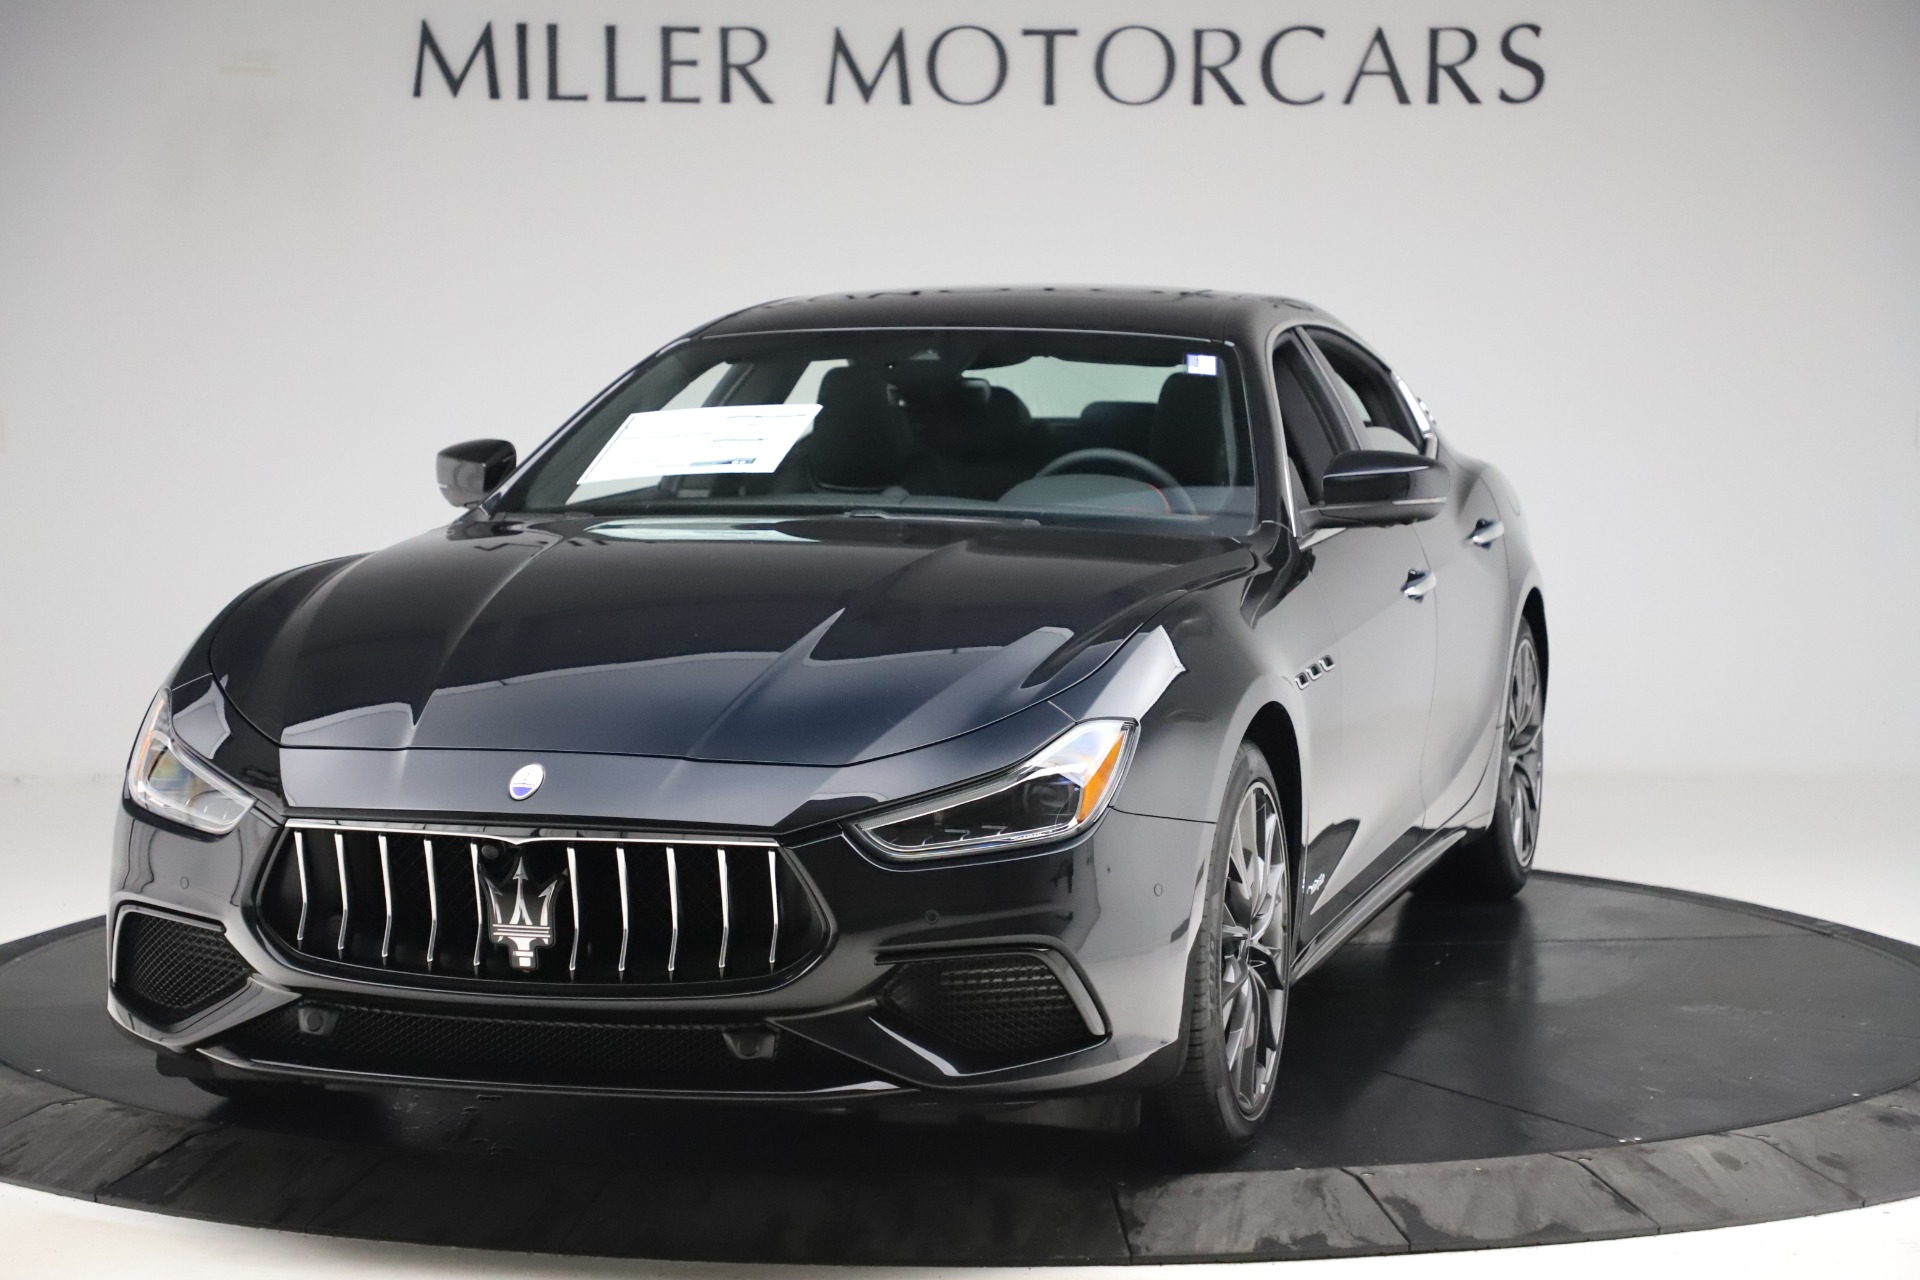 New 2019 Maserati Ghibli S Q4 GranSport for sale $99,905 at Maserati of Greenwich in Greenwich CT 06830 1